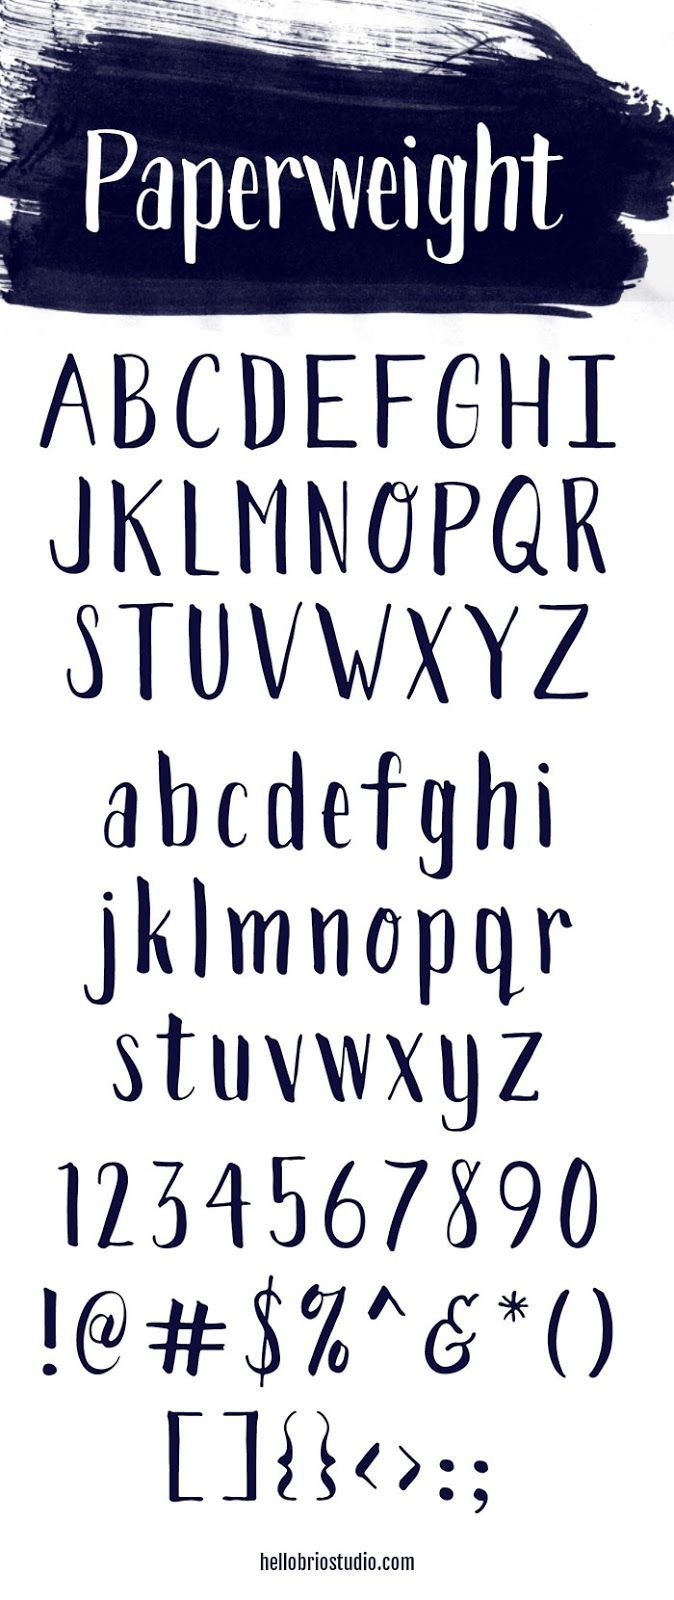 Paperweight Font by @jnnfrcyl at Hello Brio Studio - FREE or purchase for a commercial license